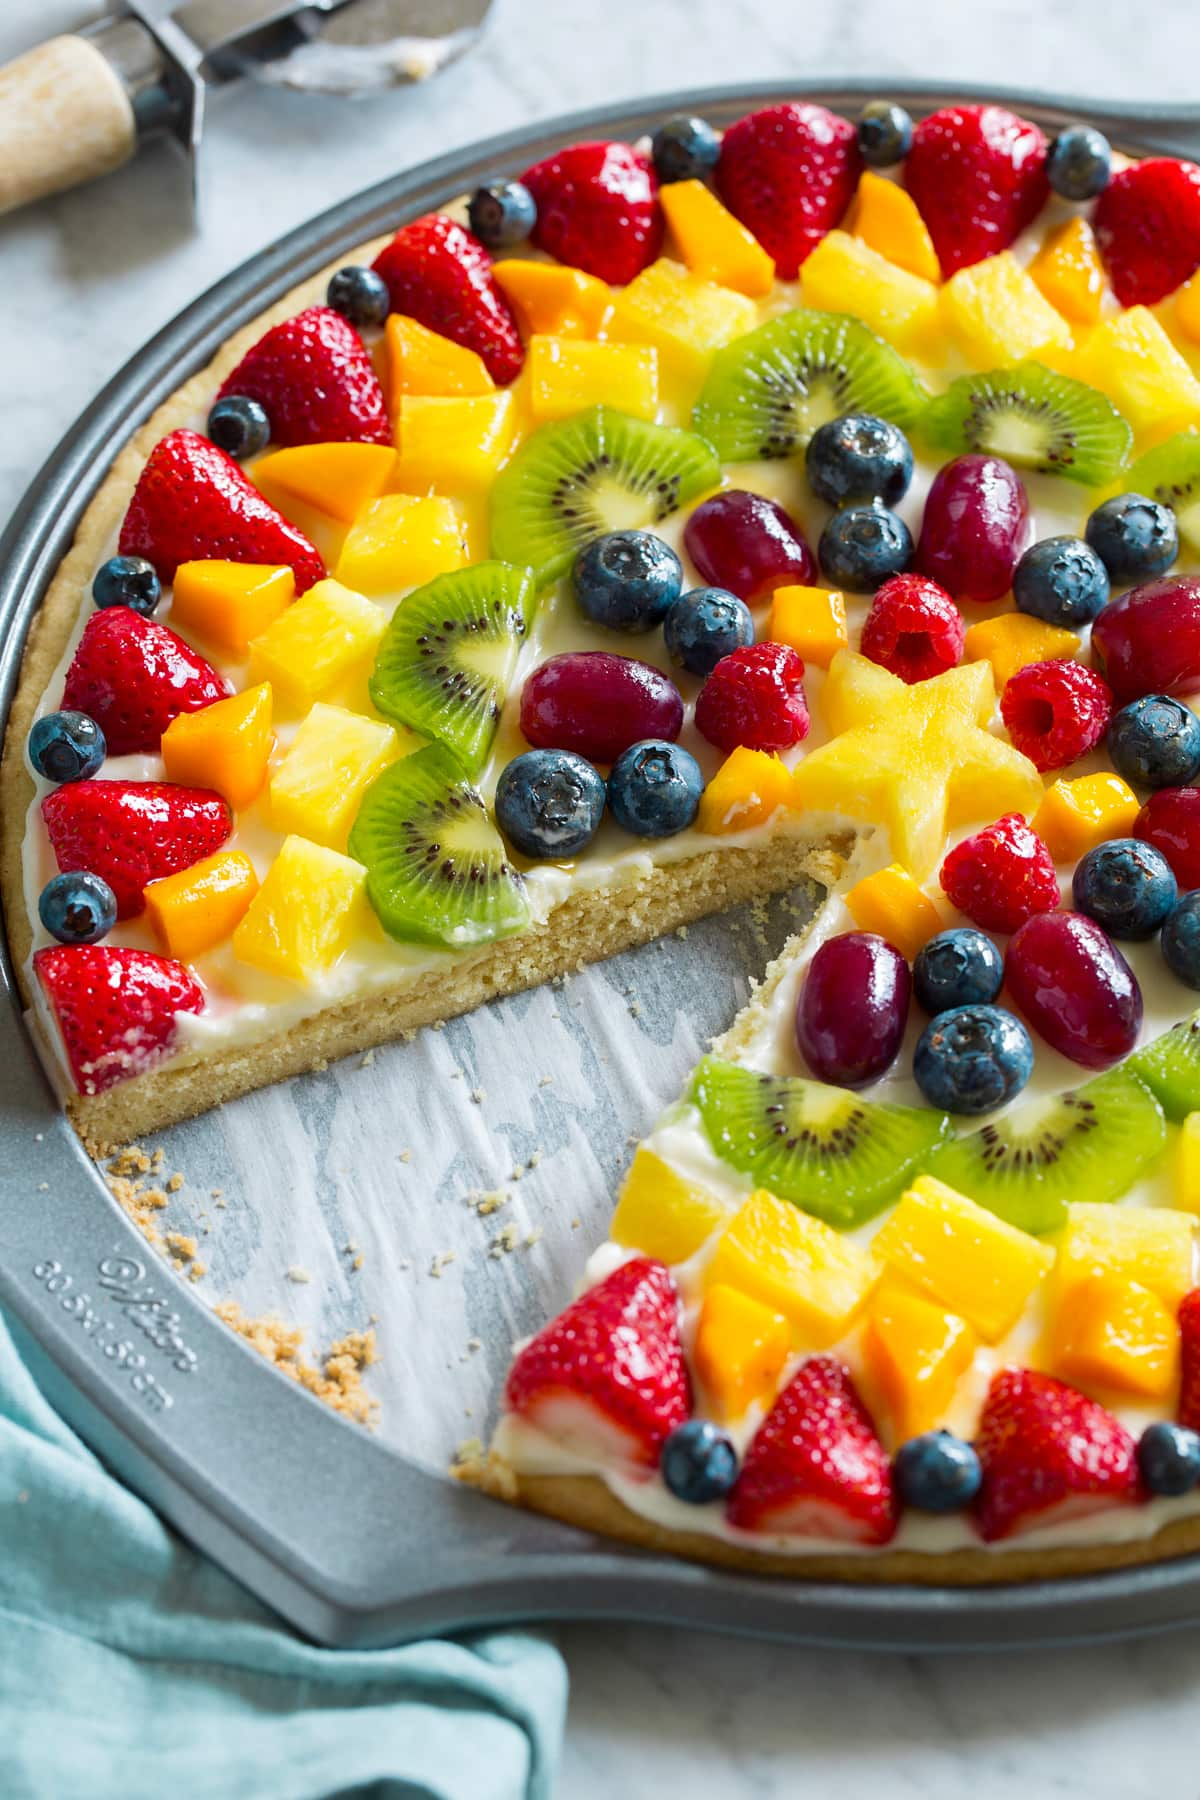 Side view of fruit pizza with one slice removed to show texture of interior.